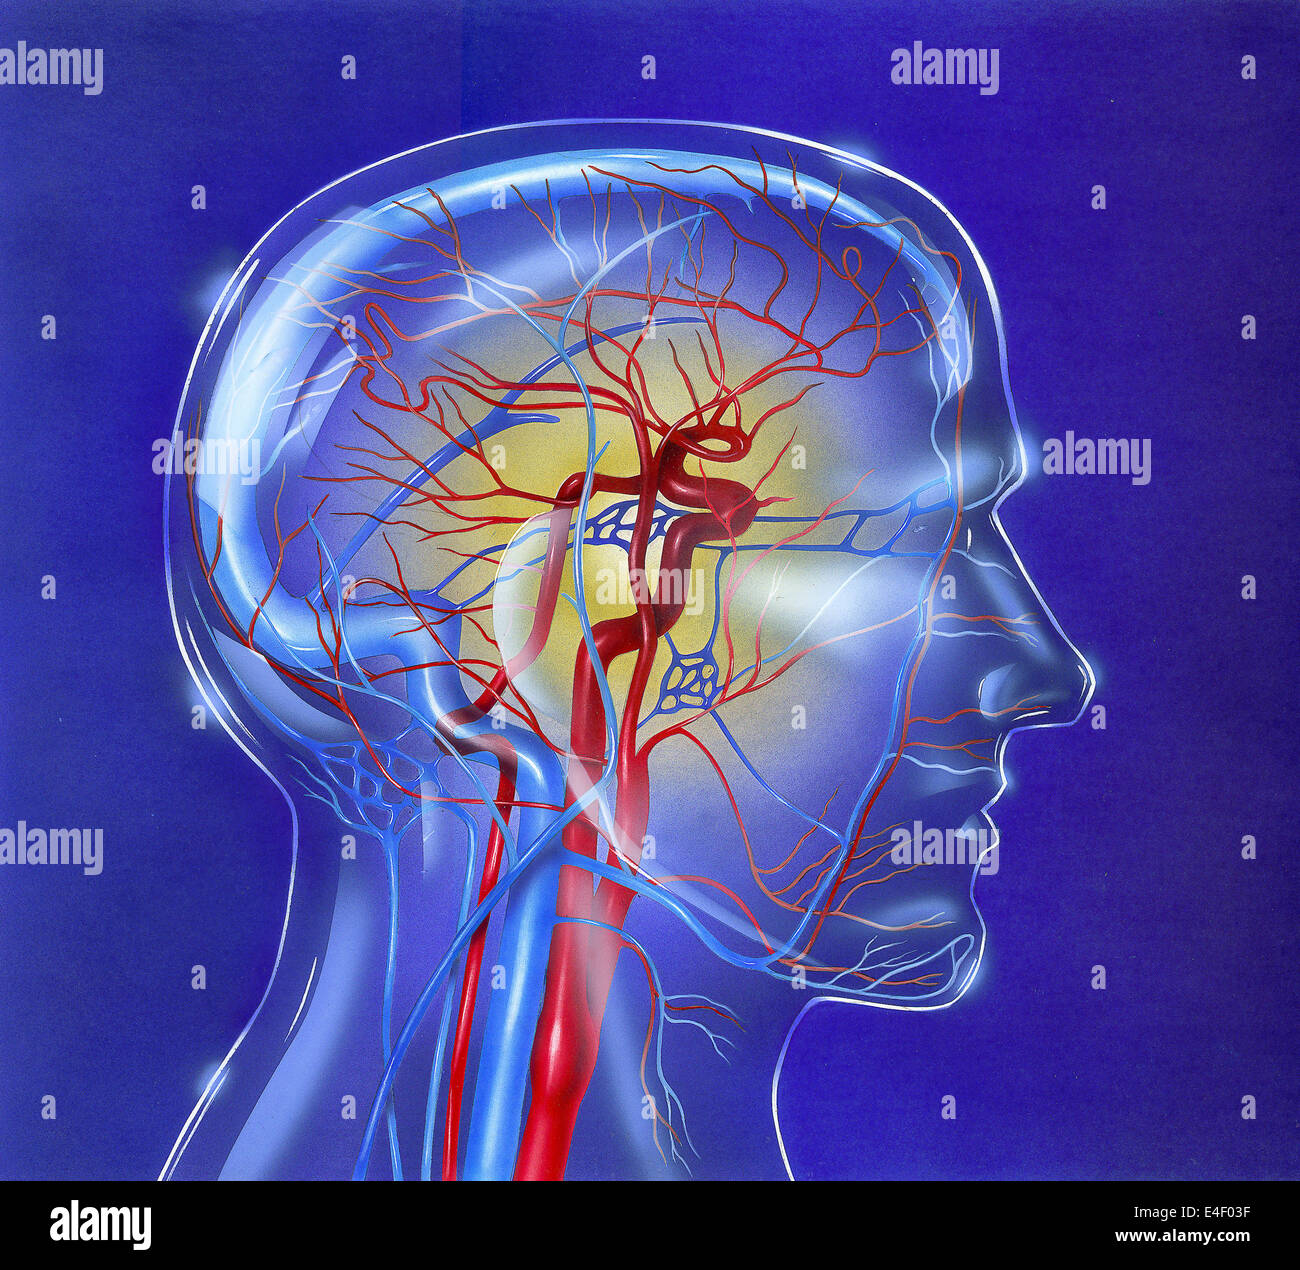 Main arteries and veins within a glass head. - Stock Image